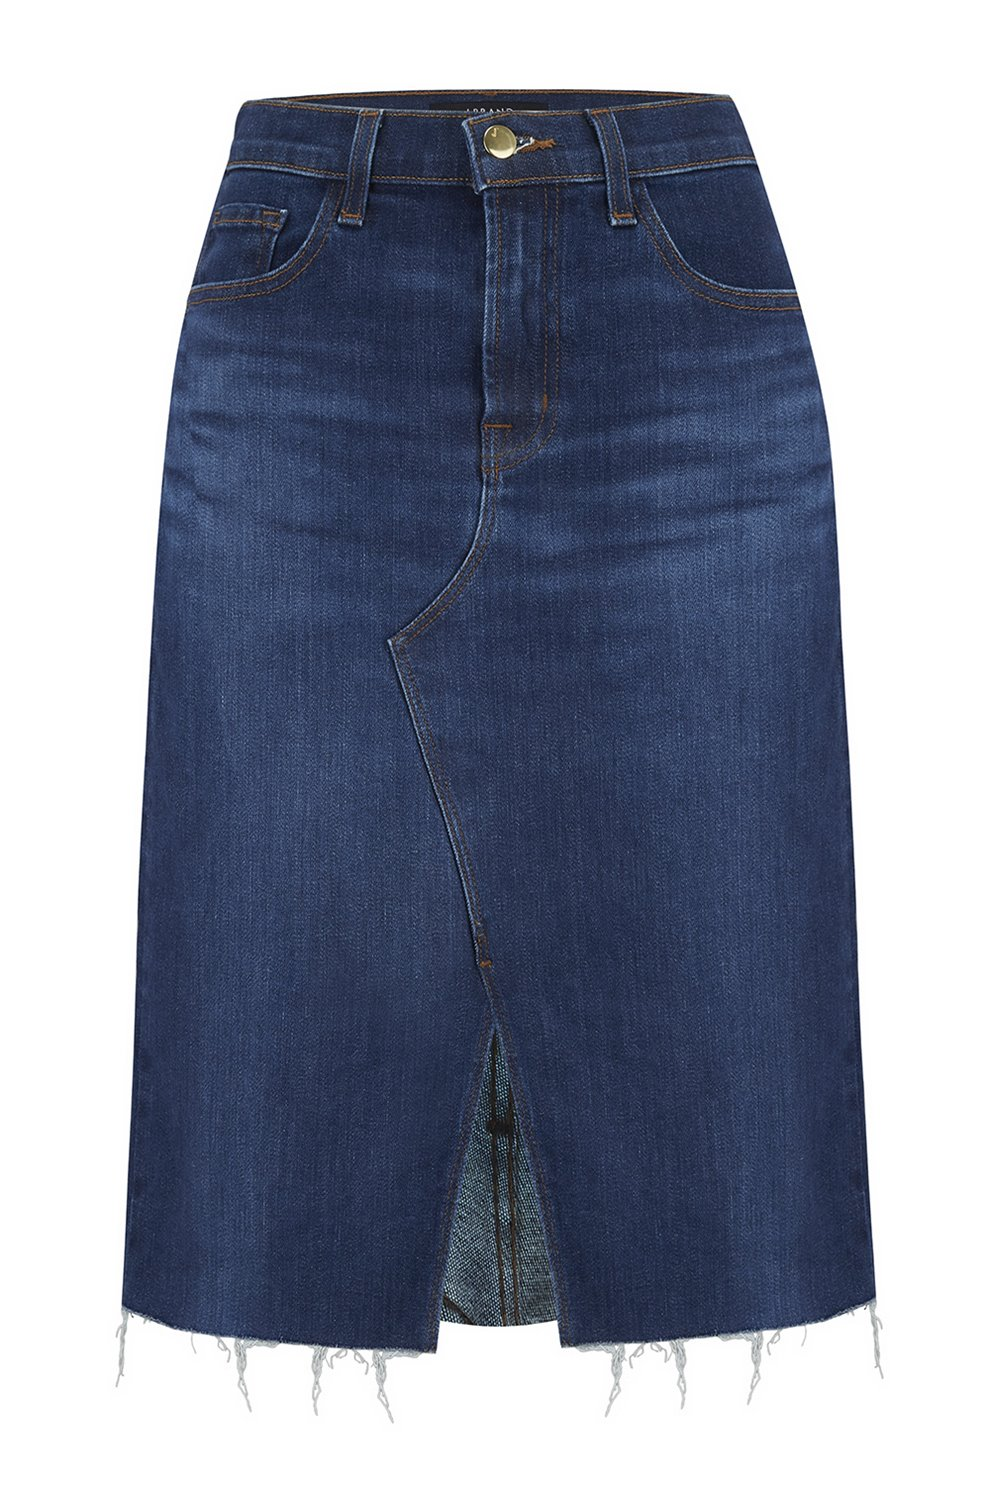 4dcd464e05 Trilogy Stores | Trystan Denim Skirt in Arcade